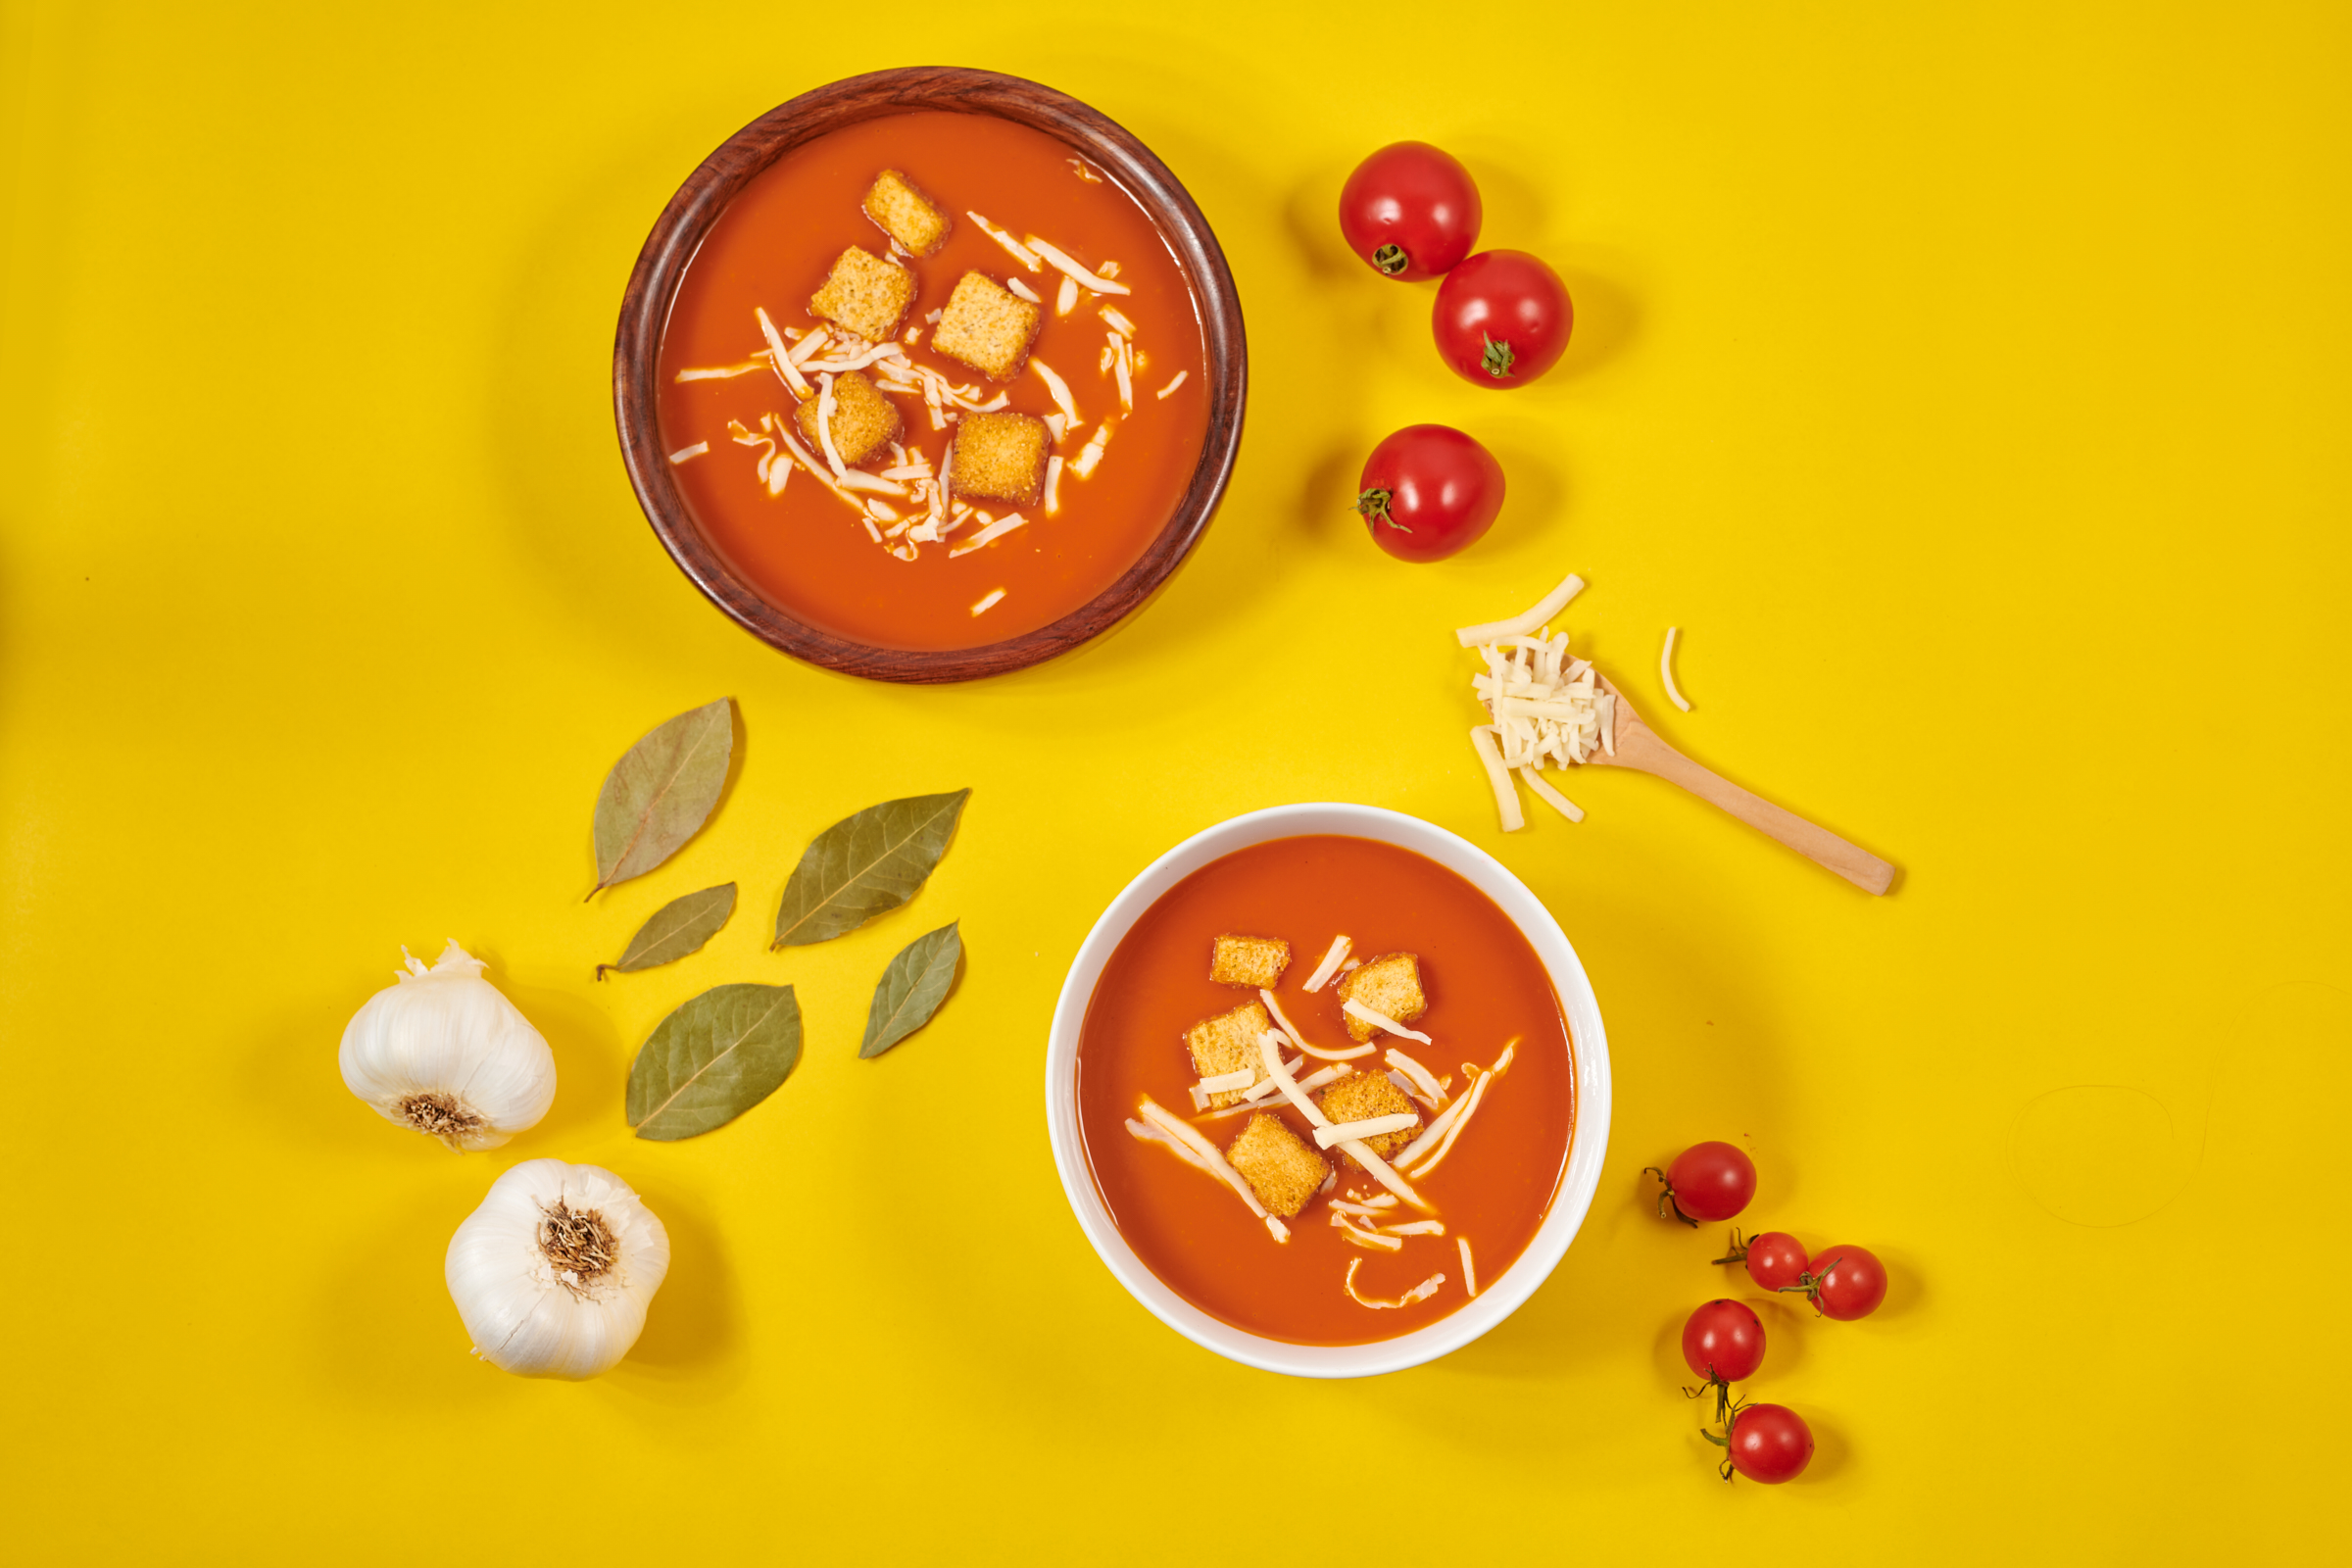 Tomato Soup - Garnished with jack cheese and croutons